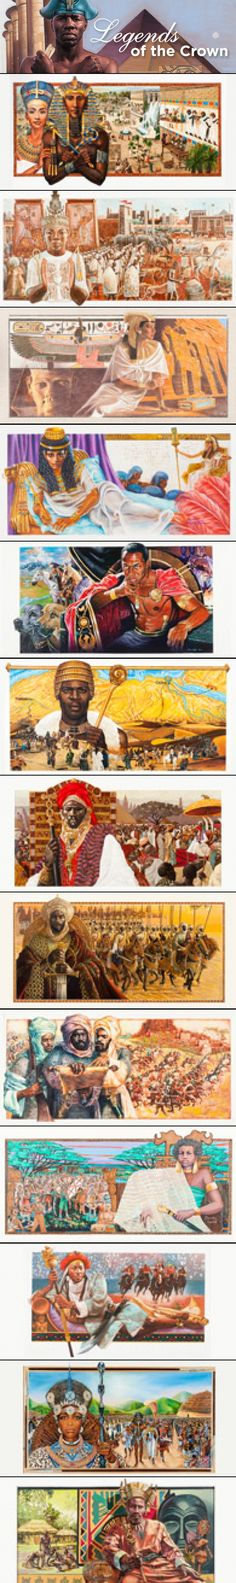 the influence of written works on africa and diaspora To kush or not to kush notes  spread slowly across africa because of the migration and influence of the bantu-speaking people, who produced iron for tools and.